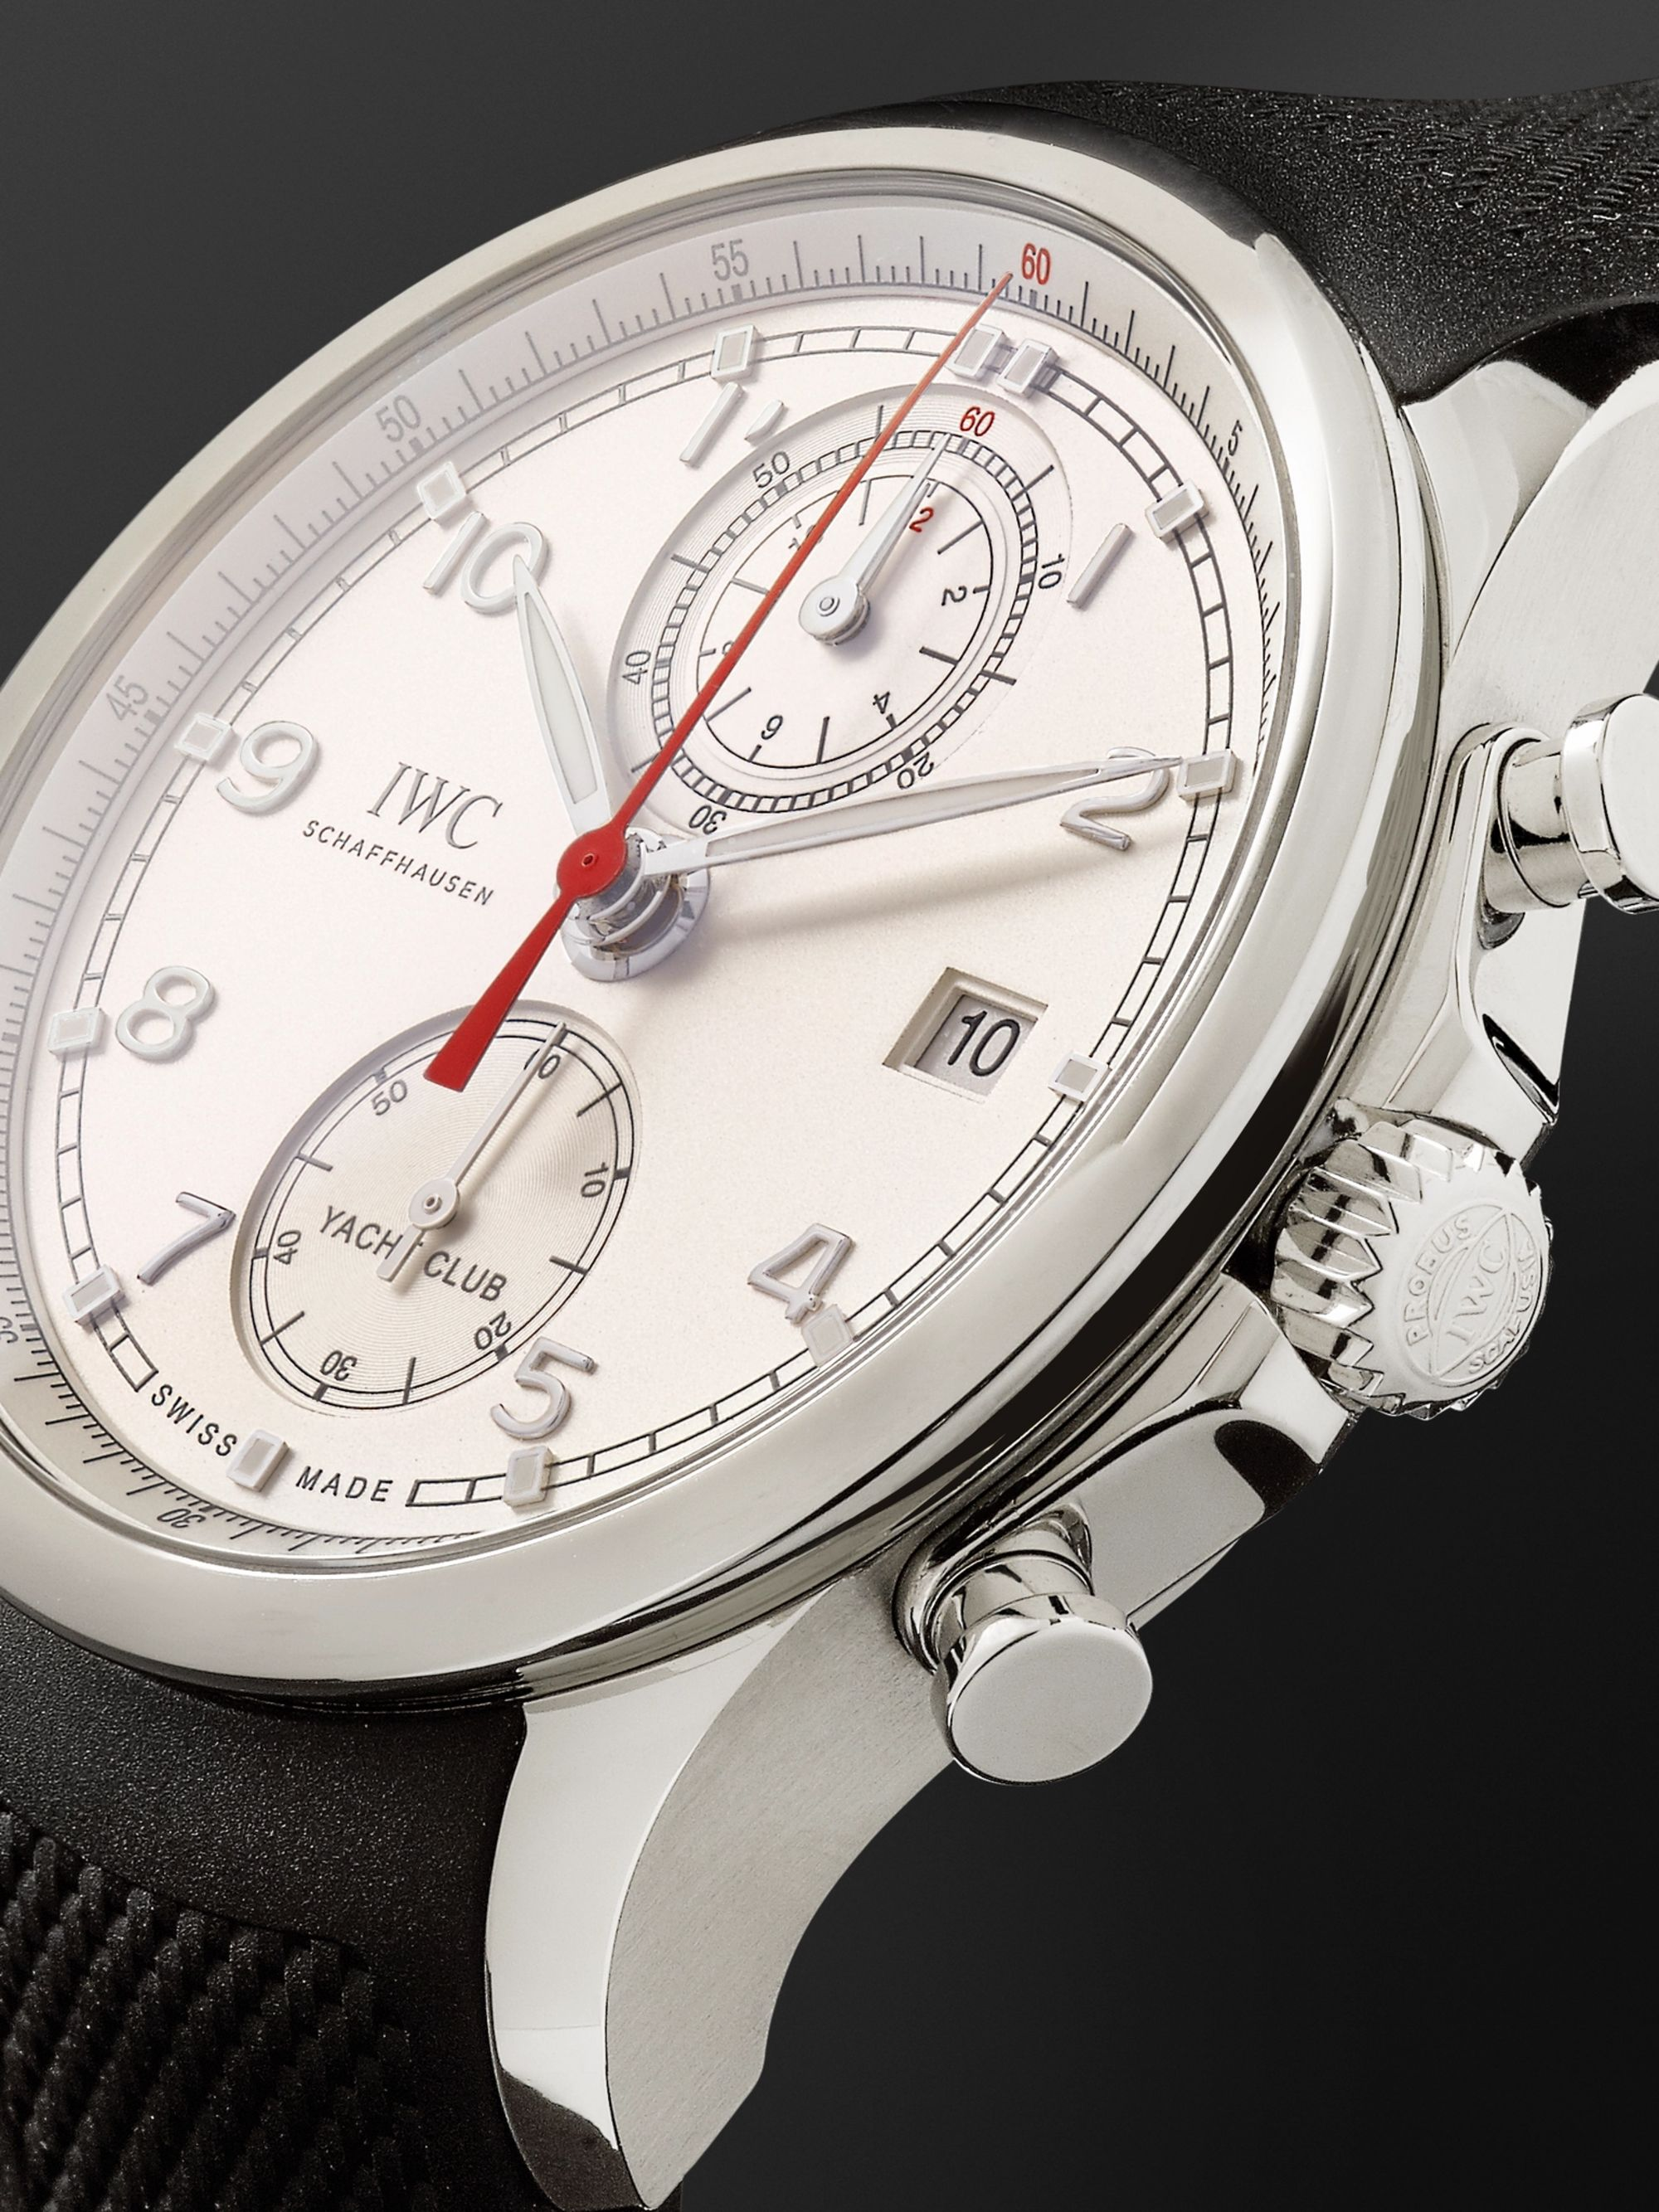 IWC SCHAFFHAUSEN Portugieser Yacht Club Chronograph 43.5mm Stainless Steel and Rubber Watch, Ref. No. IW390502